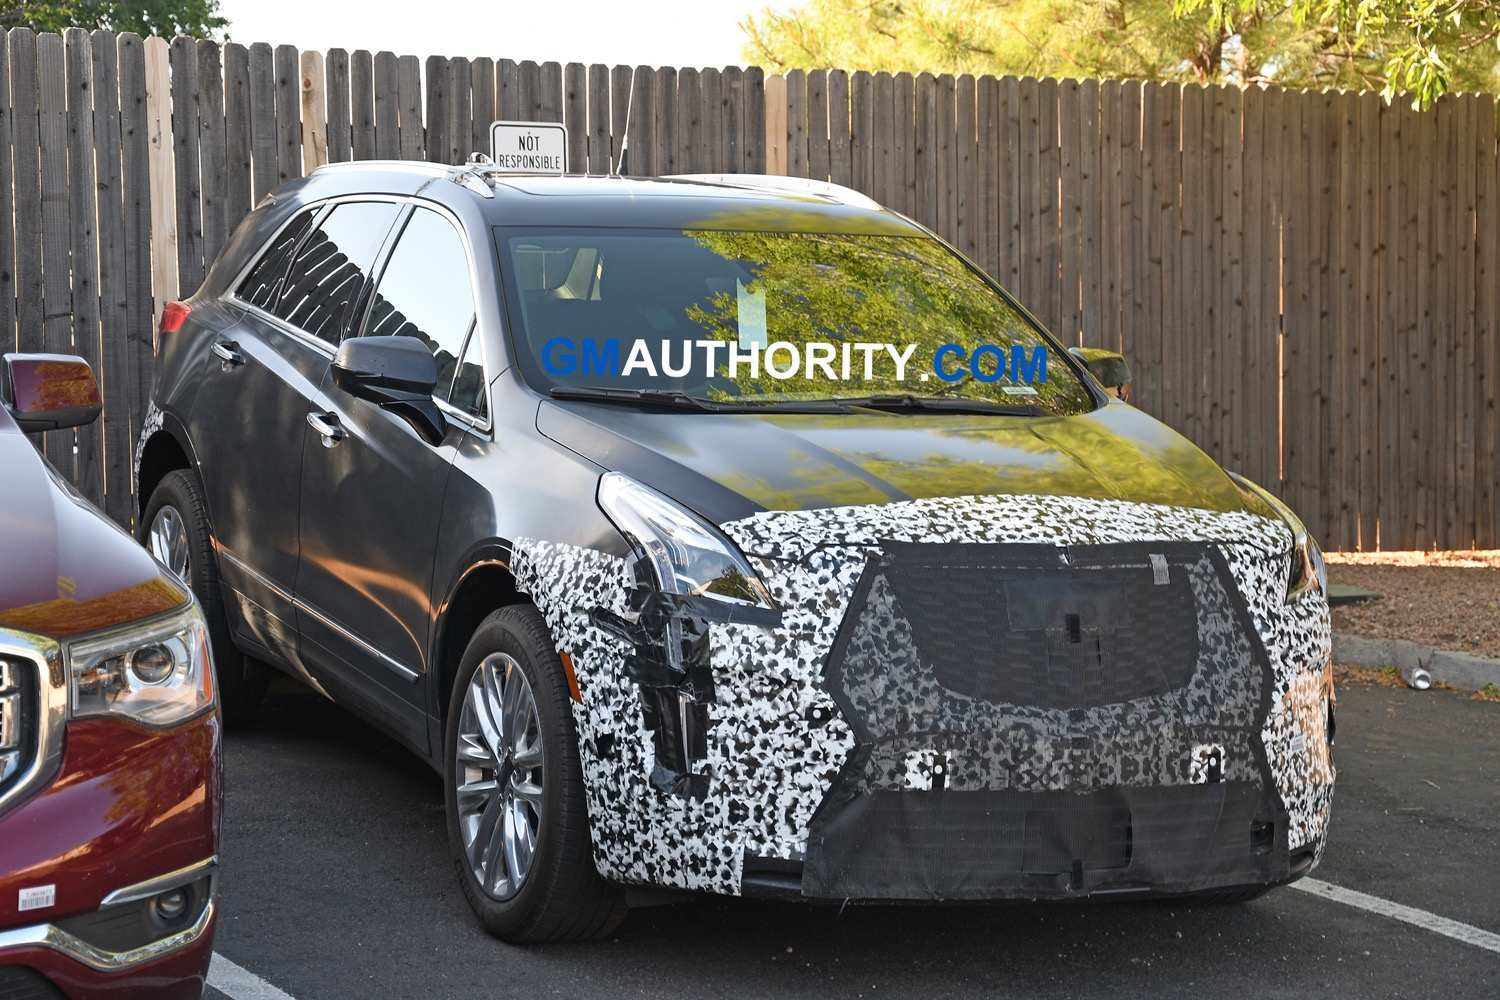 39 All New Spy Shots Cadillac Xt5 Pictures for Spy Shots Cadillac Xt5